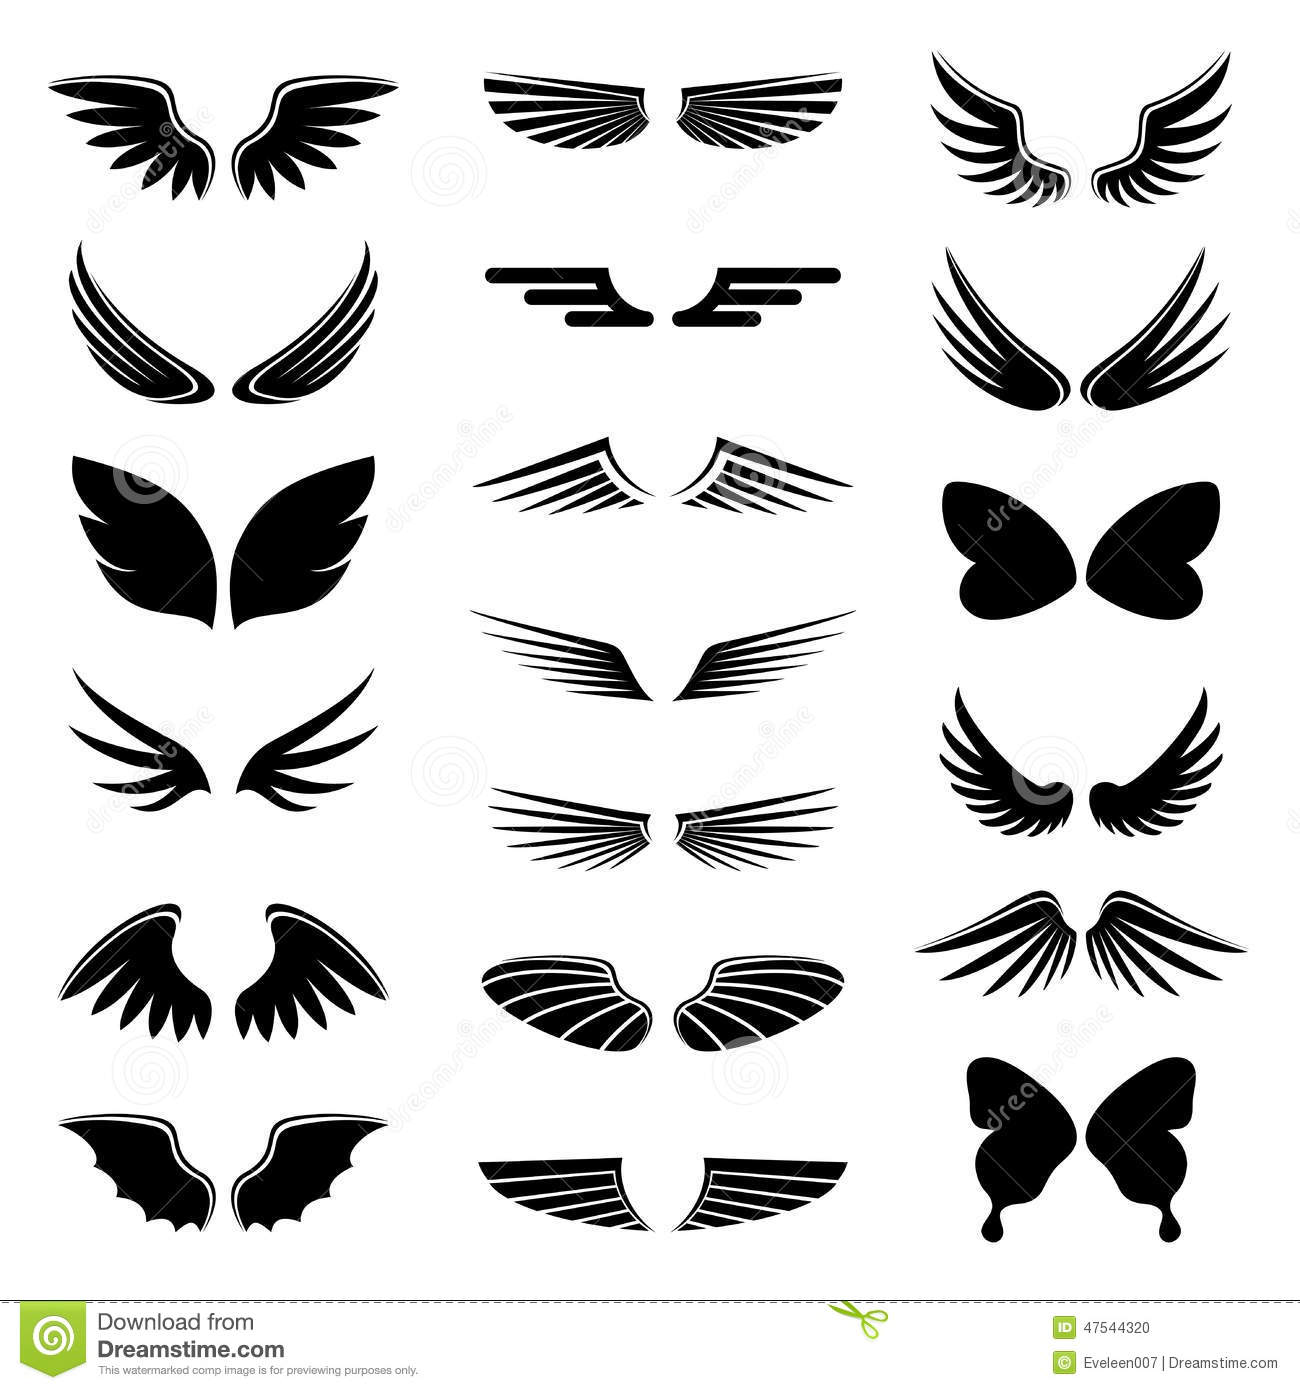 Vector set angel and bird wings, icon silhouette illustration.